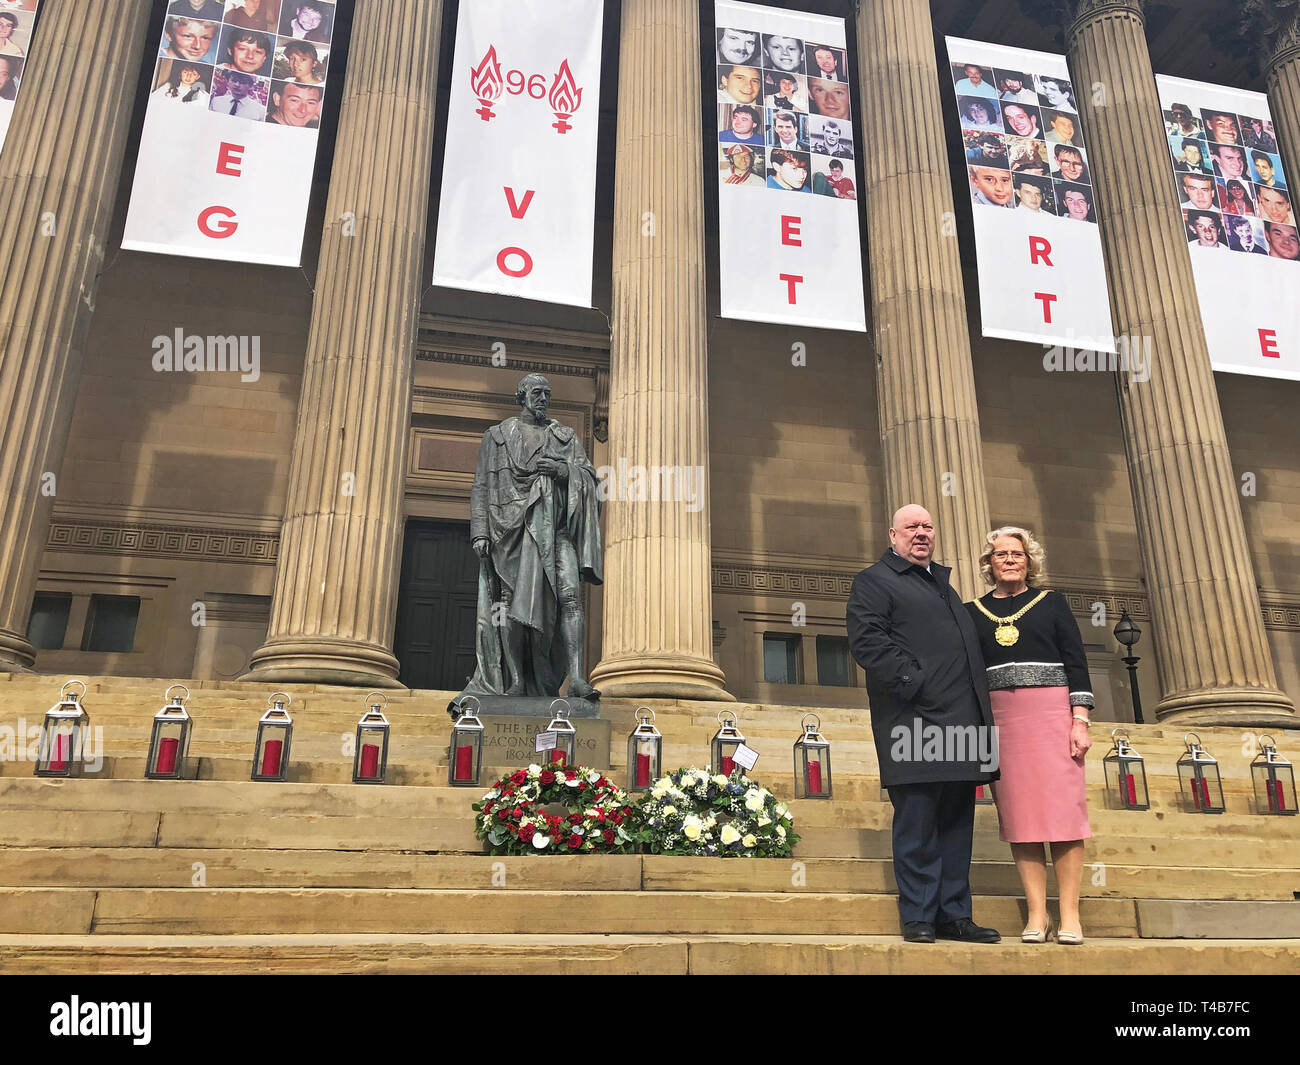 Mayor of Liverpool Joe Anderson and Lord Mayor Christine Banks stand on the steps of St George???s Hall in Liverpool after laying wreaths to mark the 30th anniversary of the Hillsborough disaster. - Stock Image